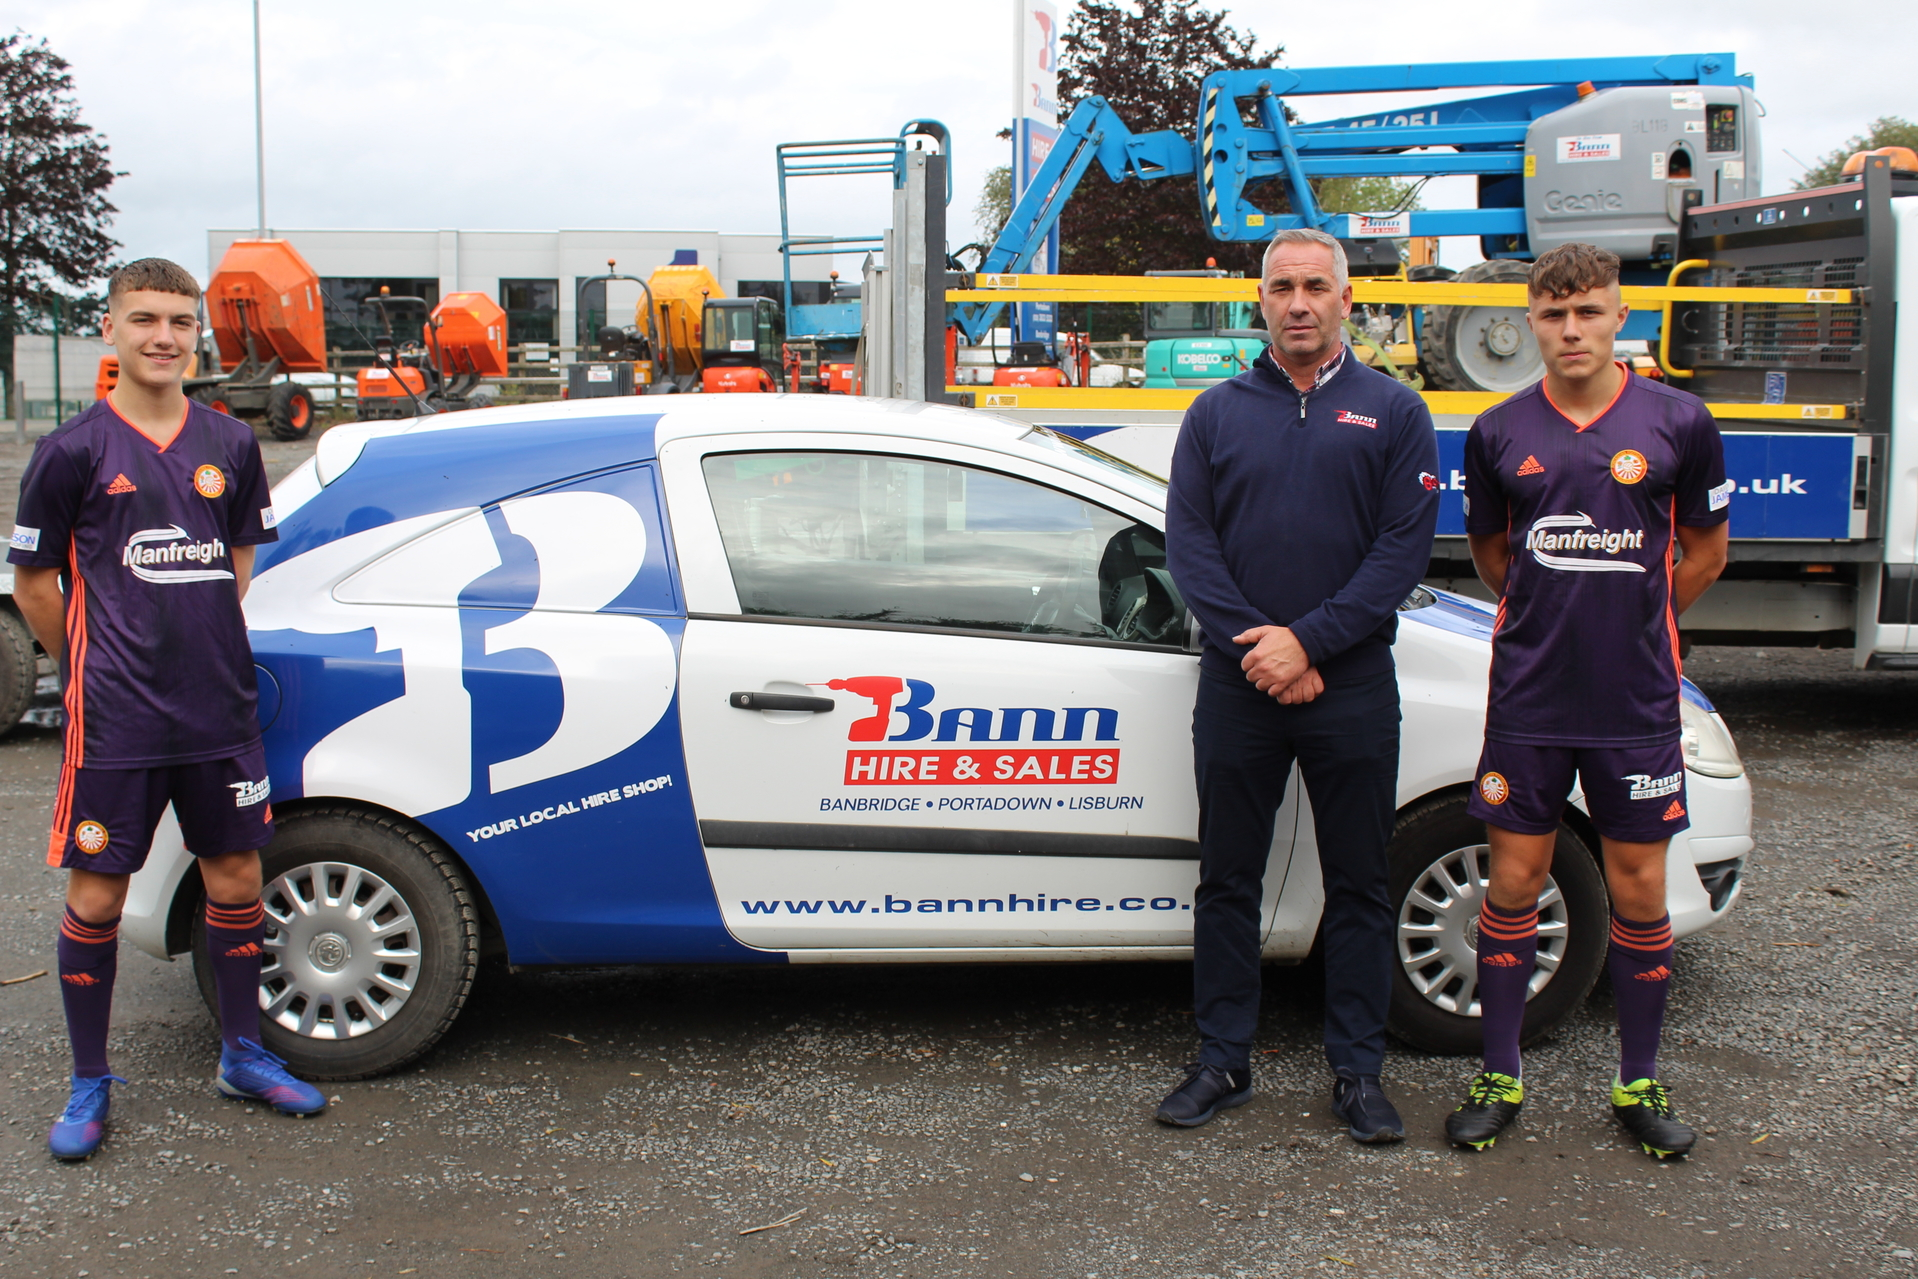 Bann Hire & Sales Continue to Partner PFC